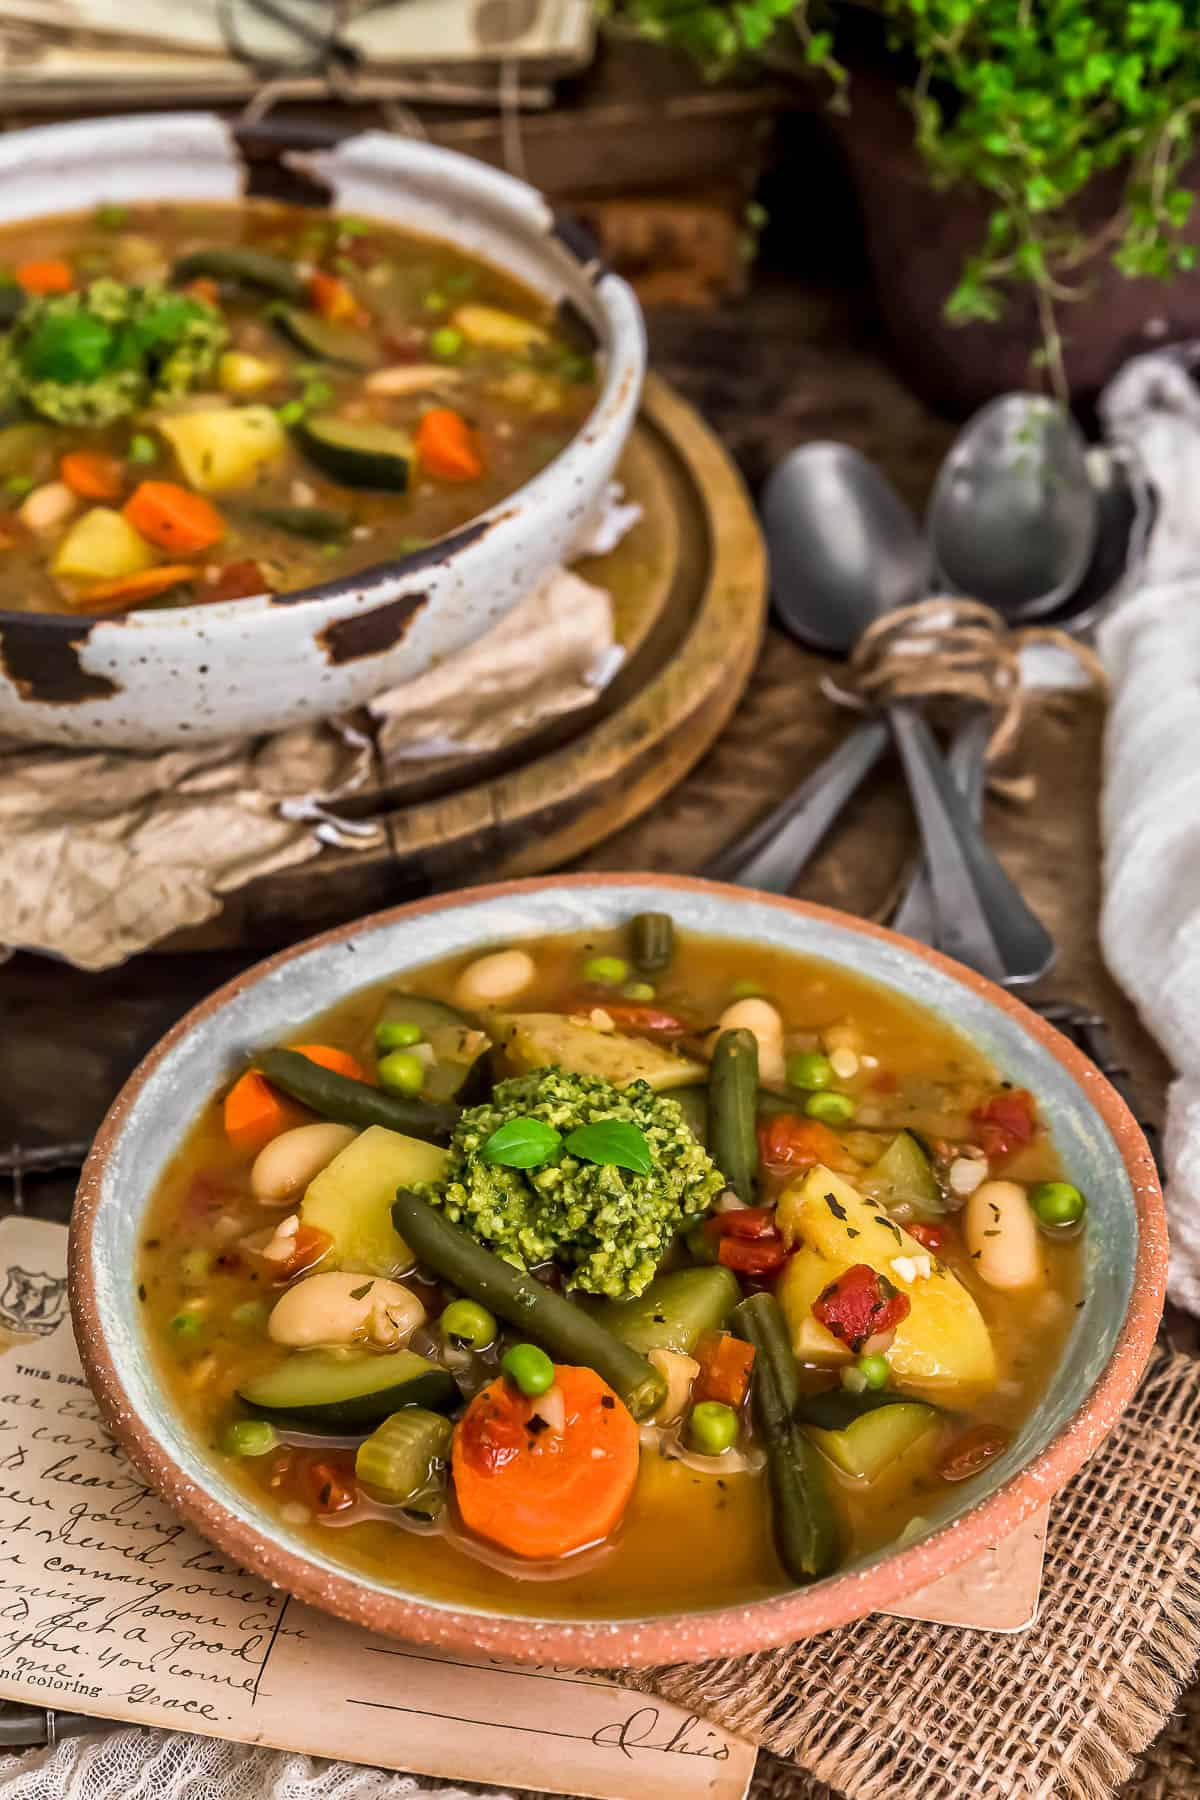 Served French Vegetable Soup